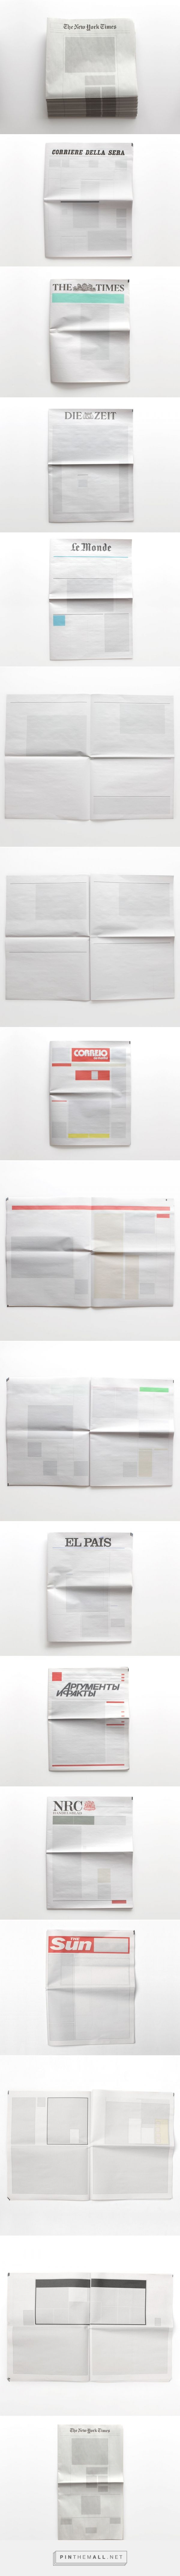 NOTHING IN THE NEWS: Newspapers from around the world with nothing in them. // by Joseph Ernst of the Sideline Collective